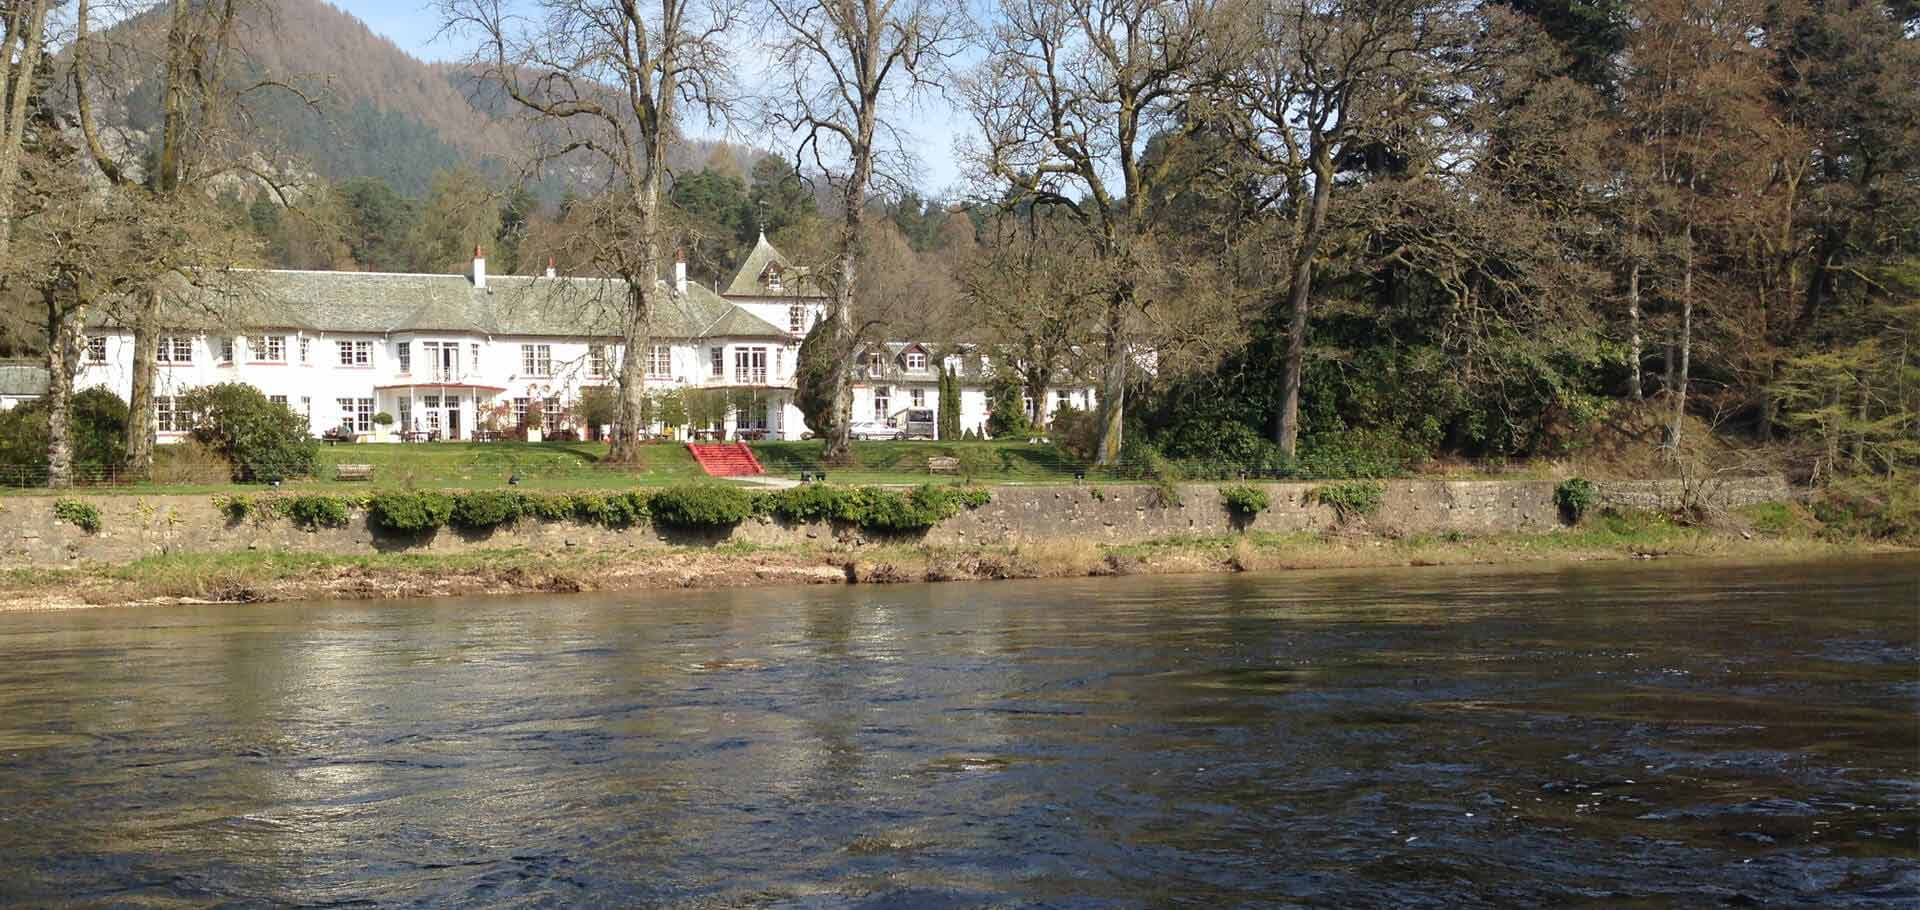 5 Star Hotel On River Tay